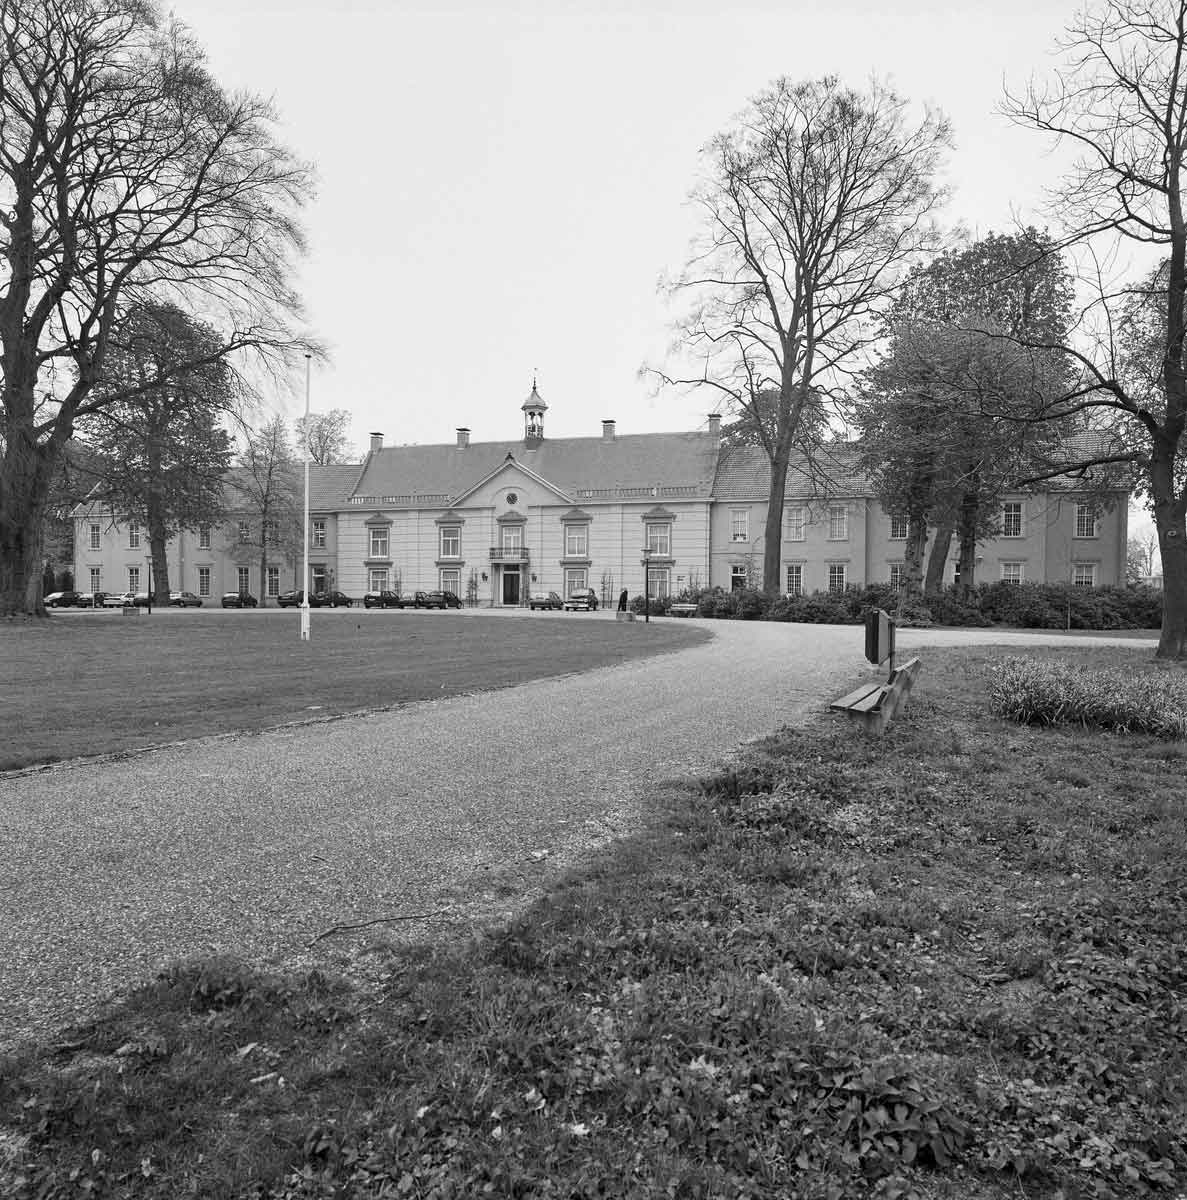 klooster_rosmalen_coudewater_rce-348593a